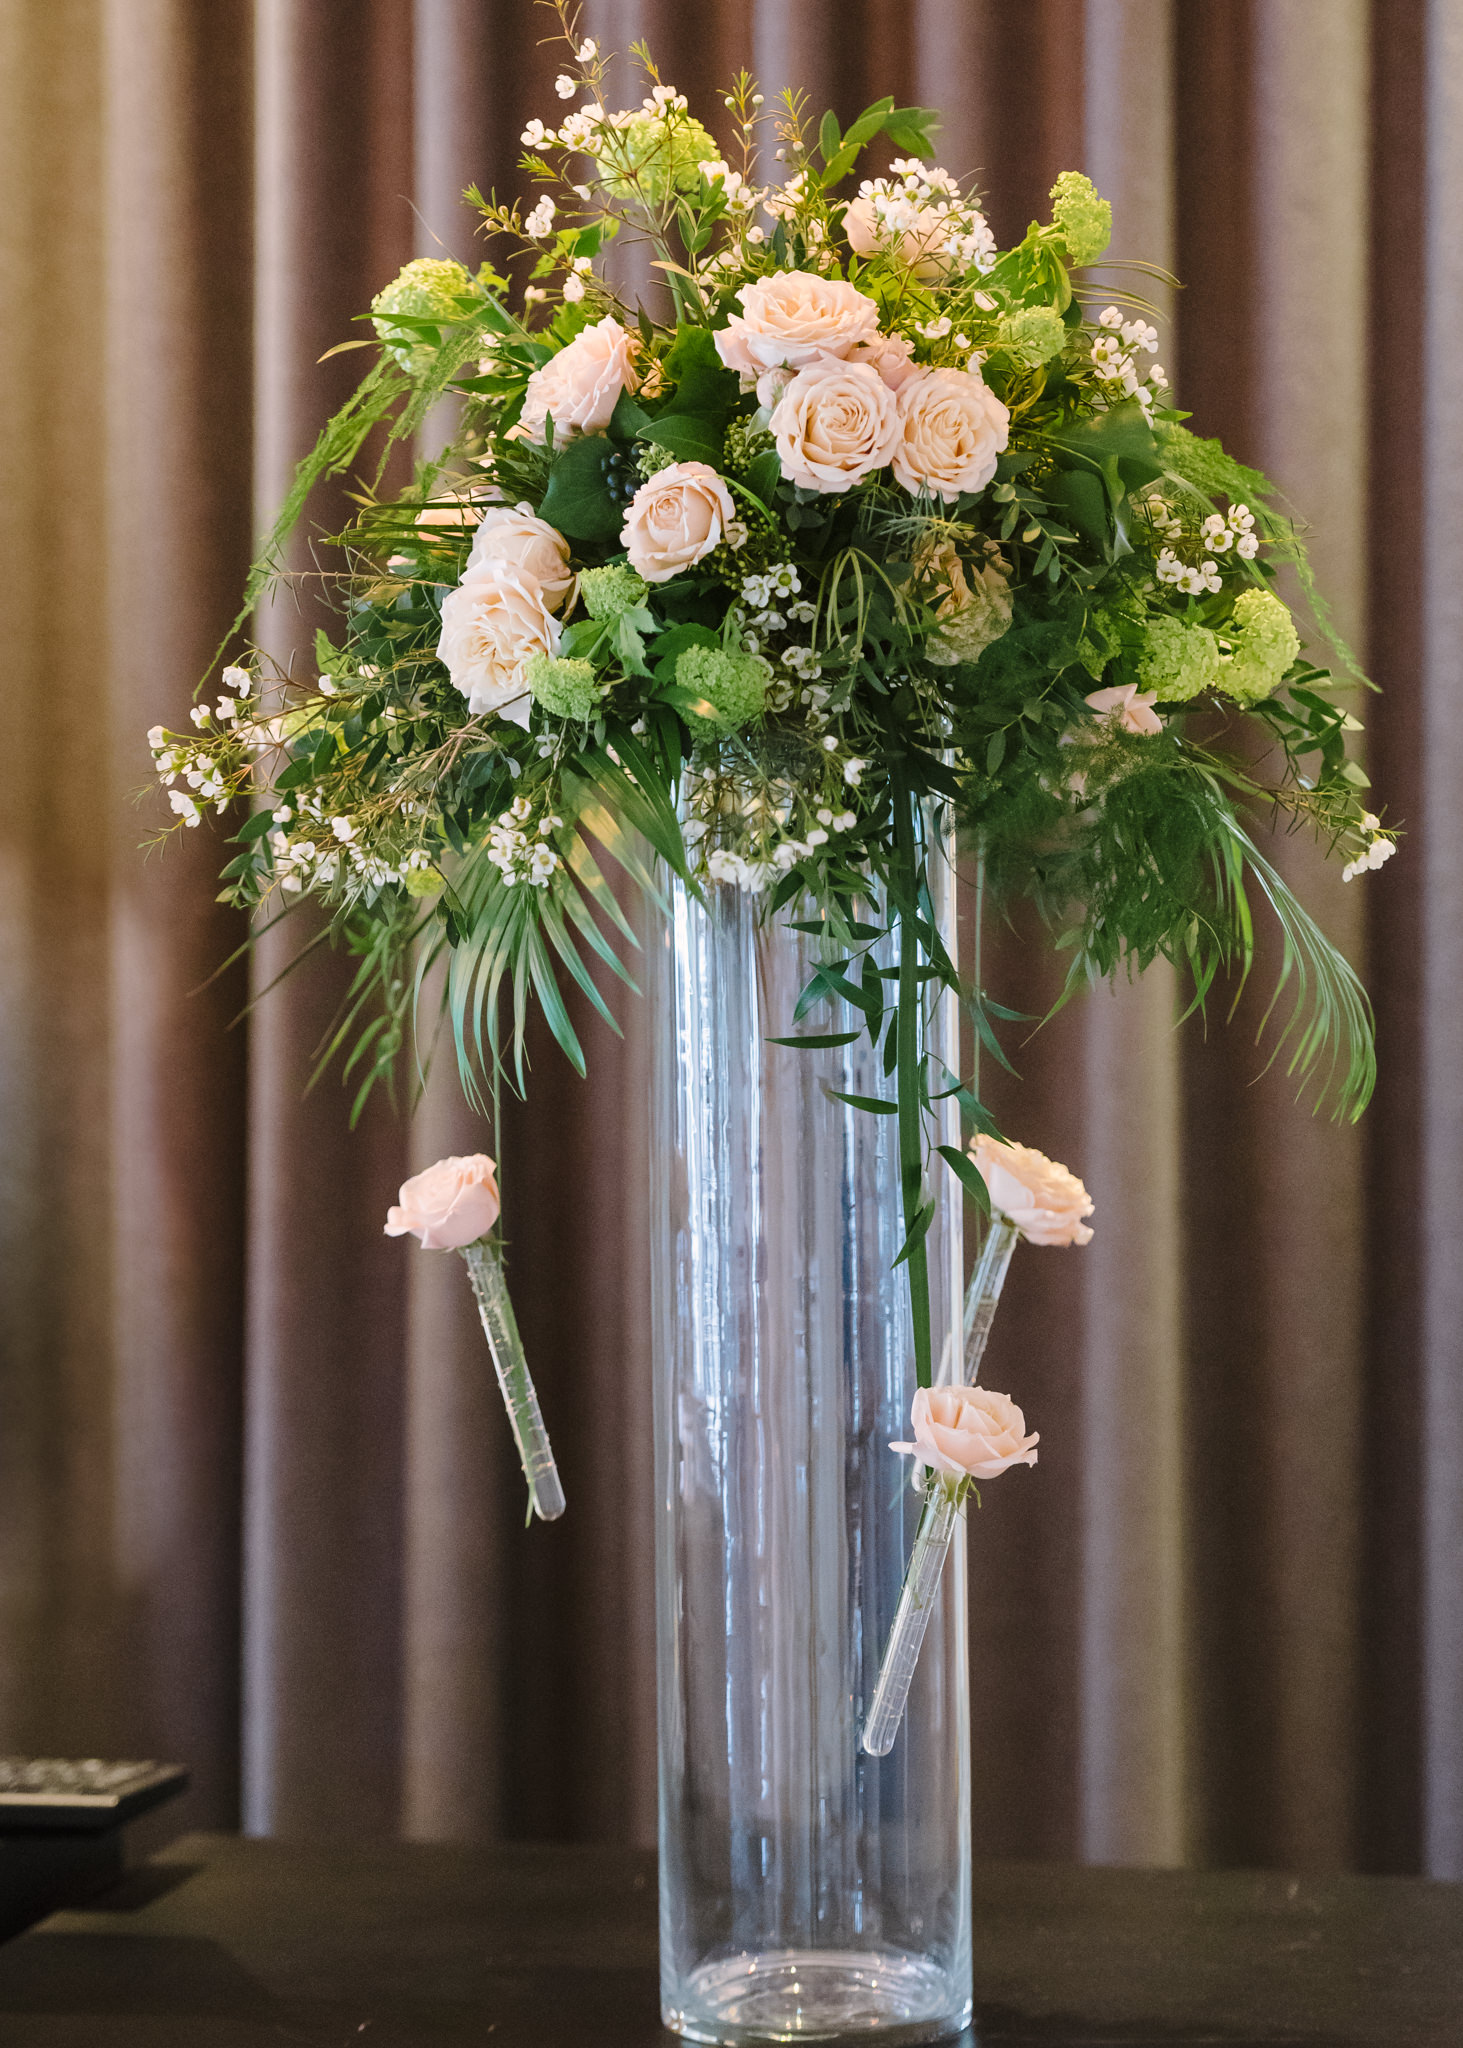 Tall event flowers